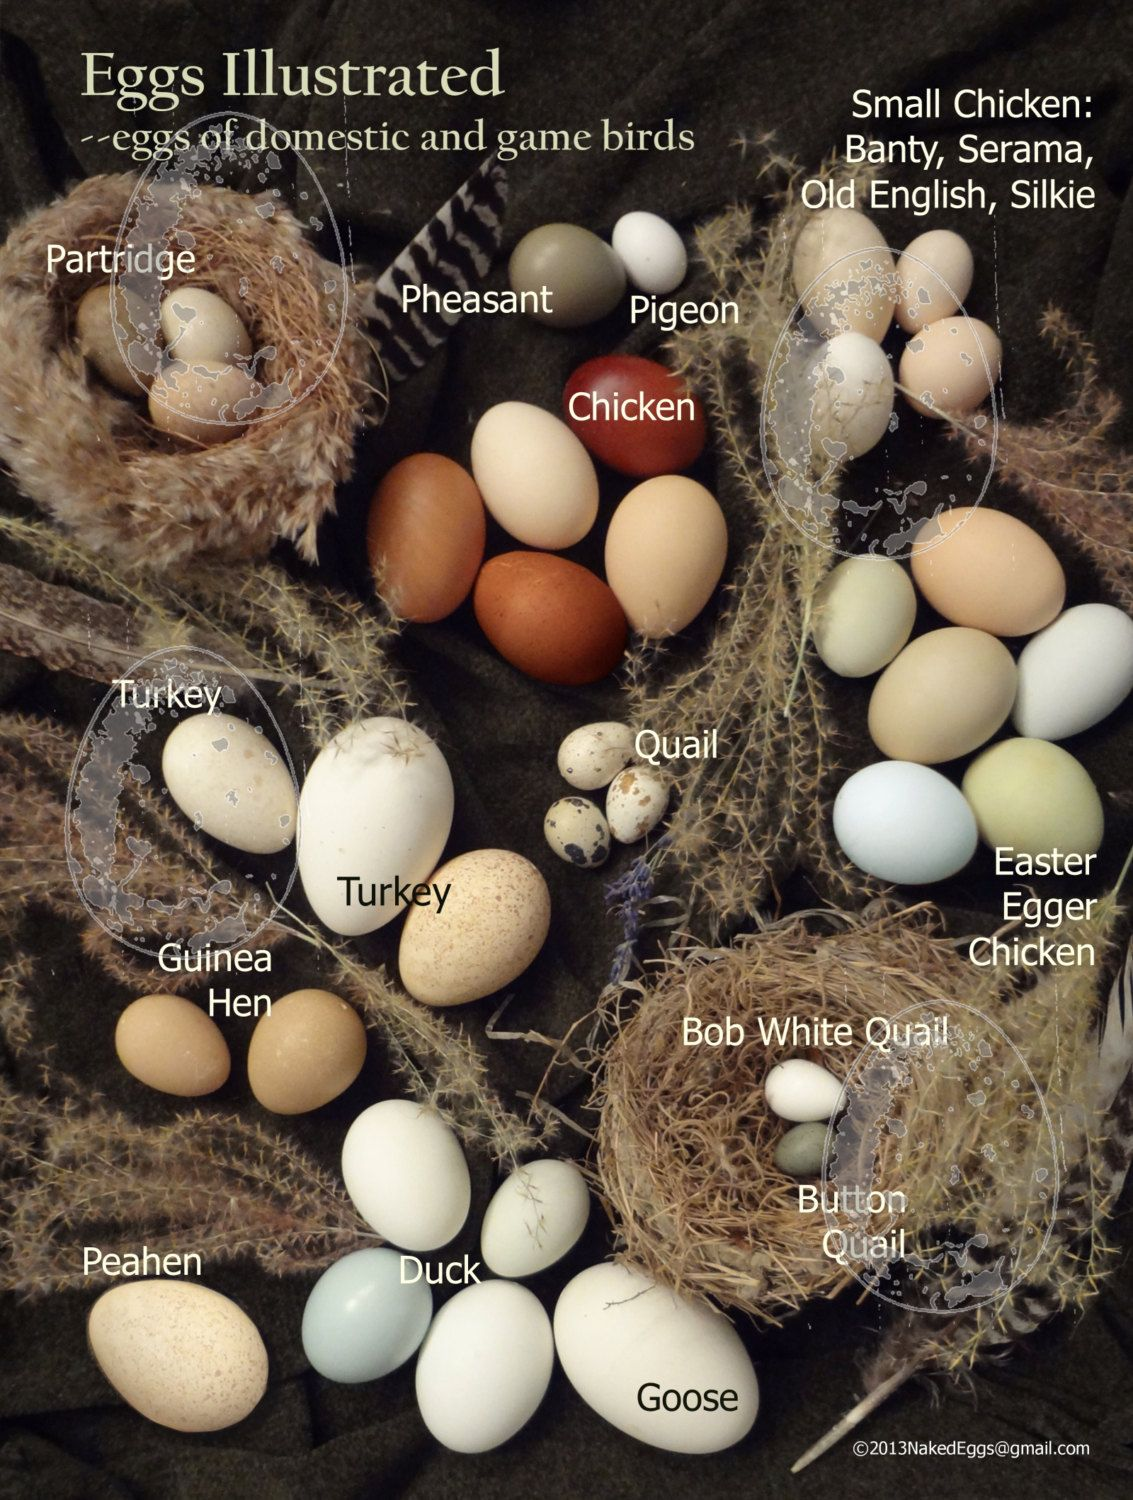 egg chickens laying eggs chicken quail identification google vs natural coop